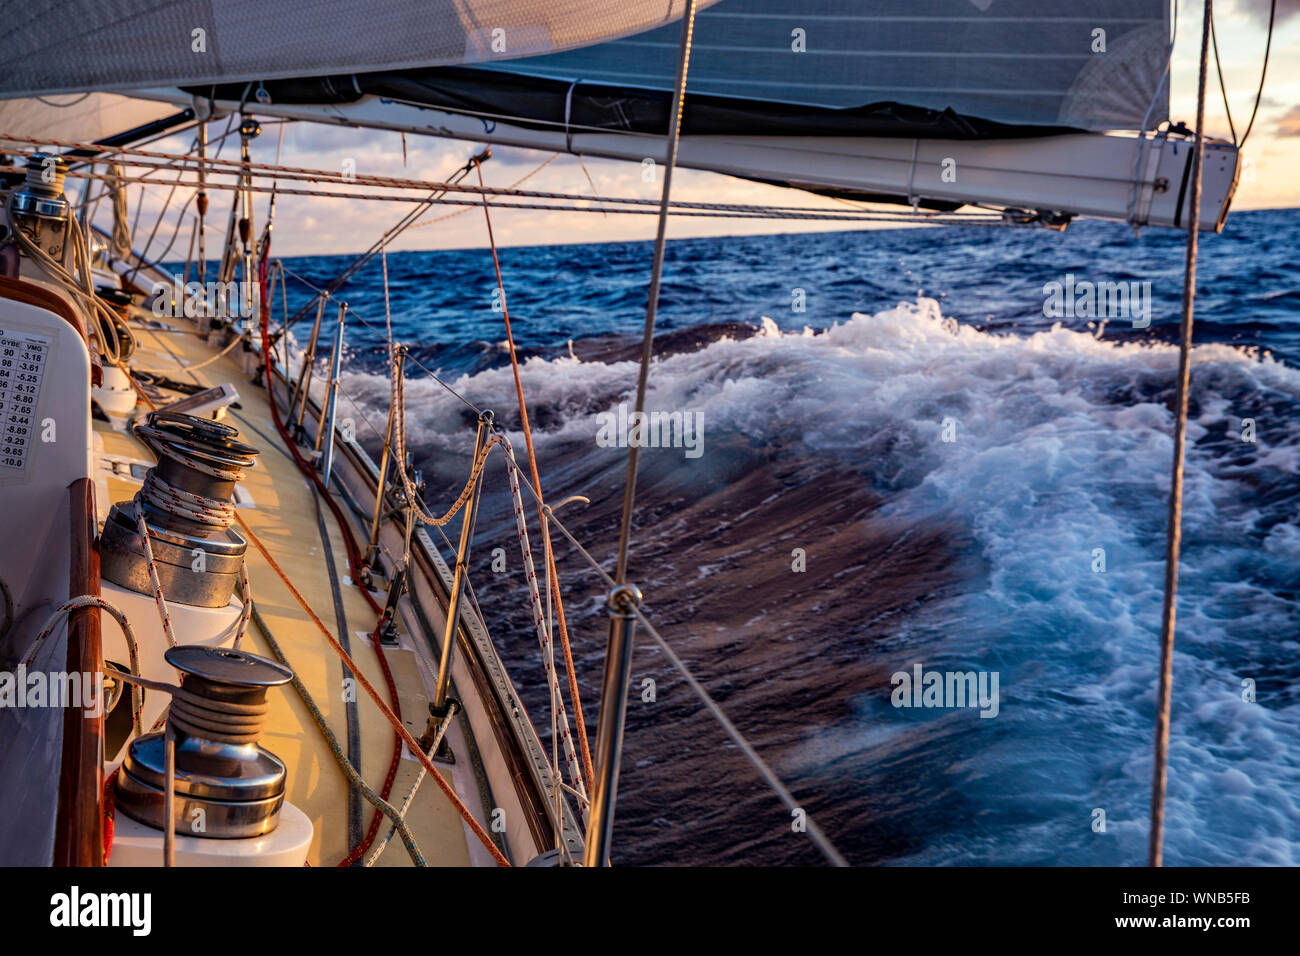 Sailing to Hawaii during the Transpac Yacht Race from Los Angeles to Hawaii. Stock Photo